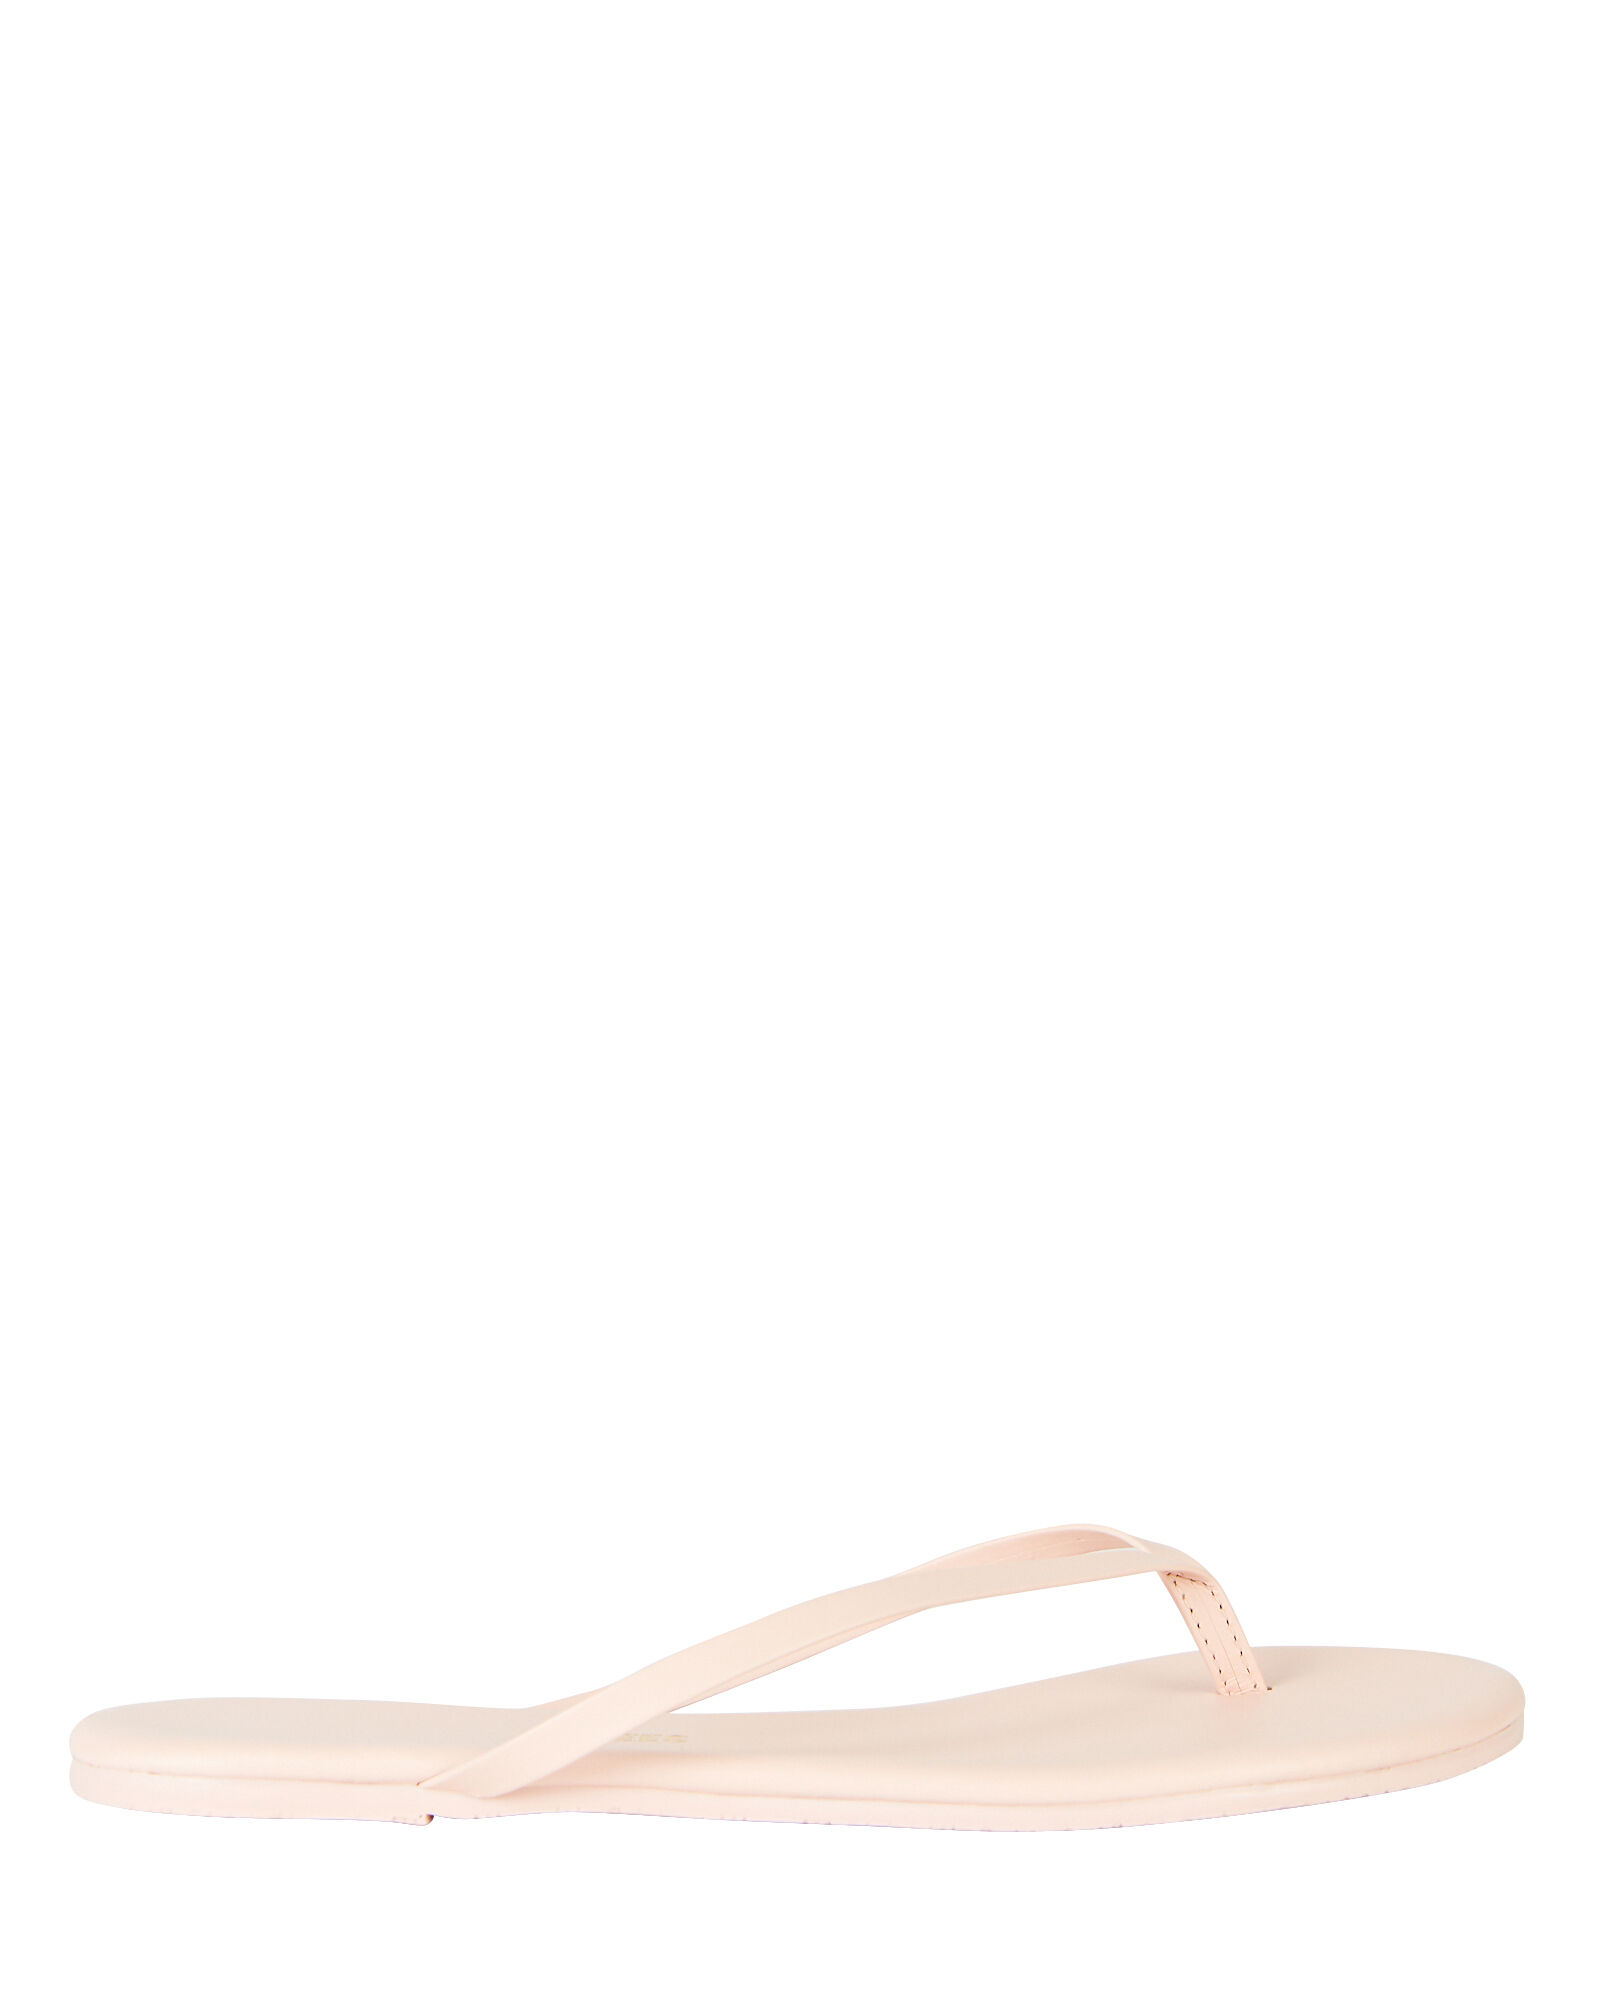 Solids Leather Flip Flops, PALE PINK, hi-res